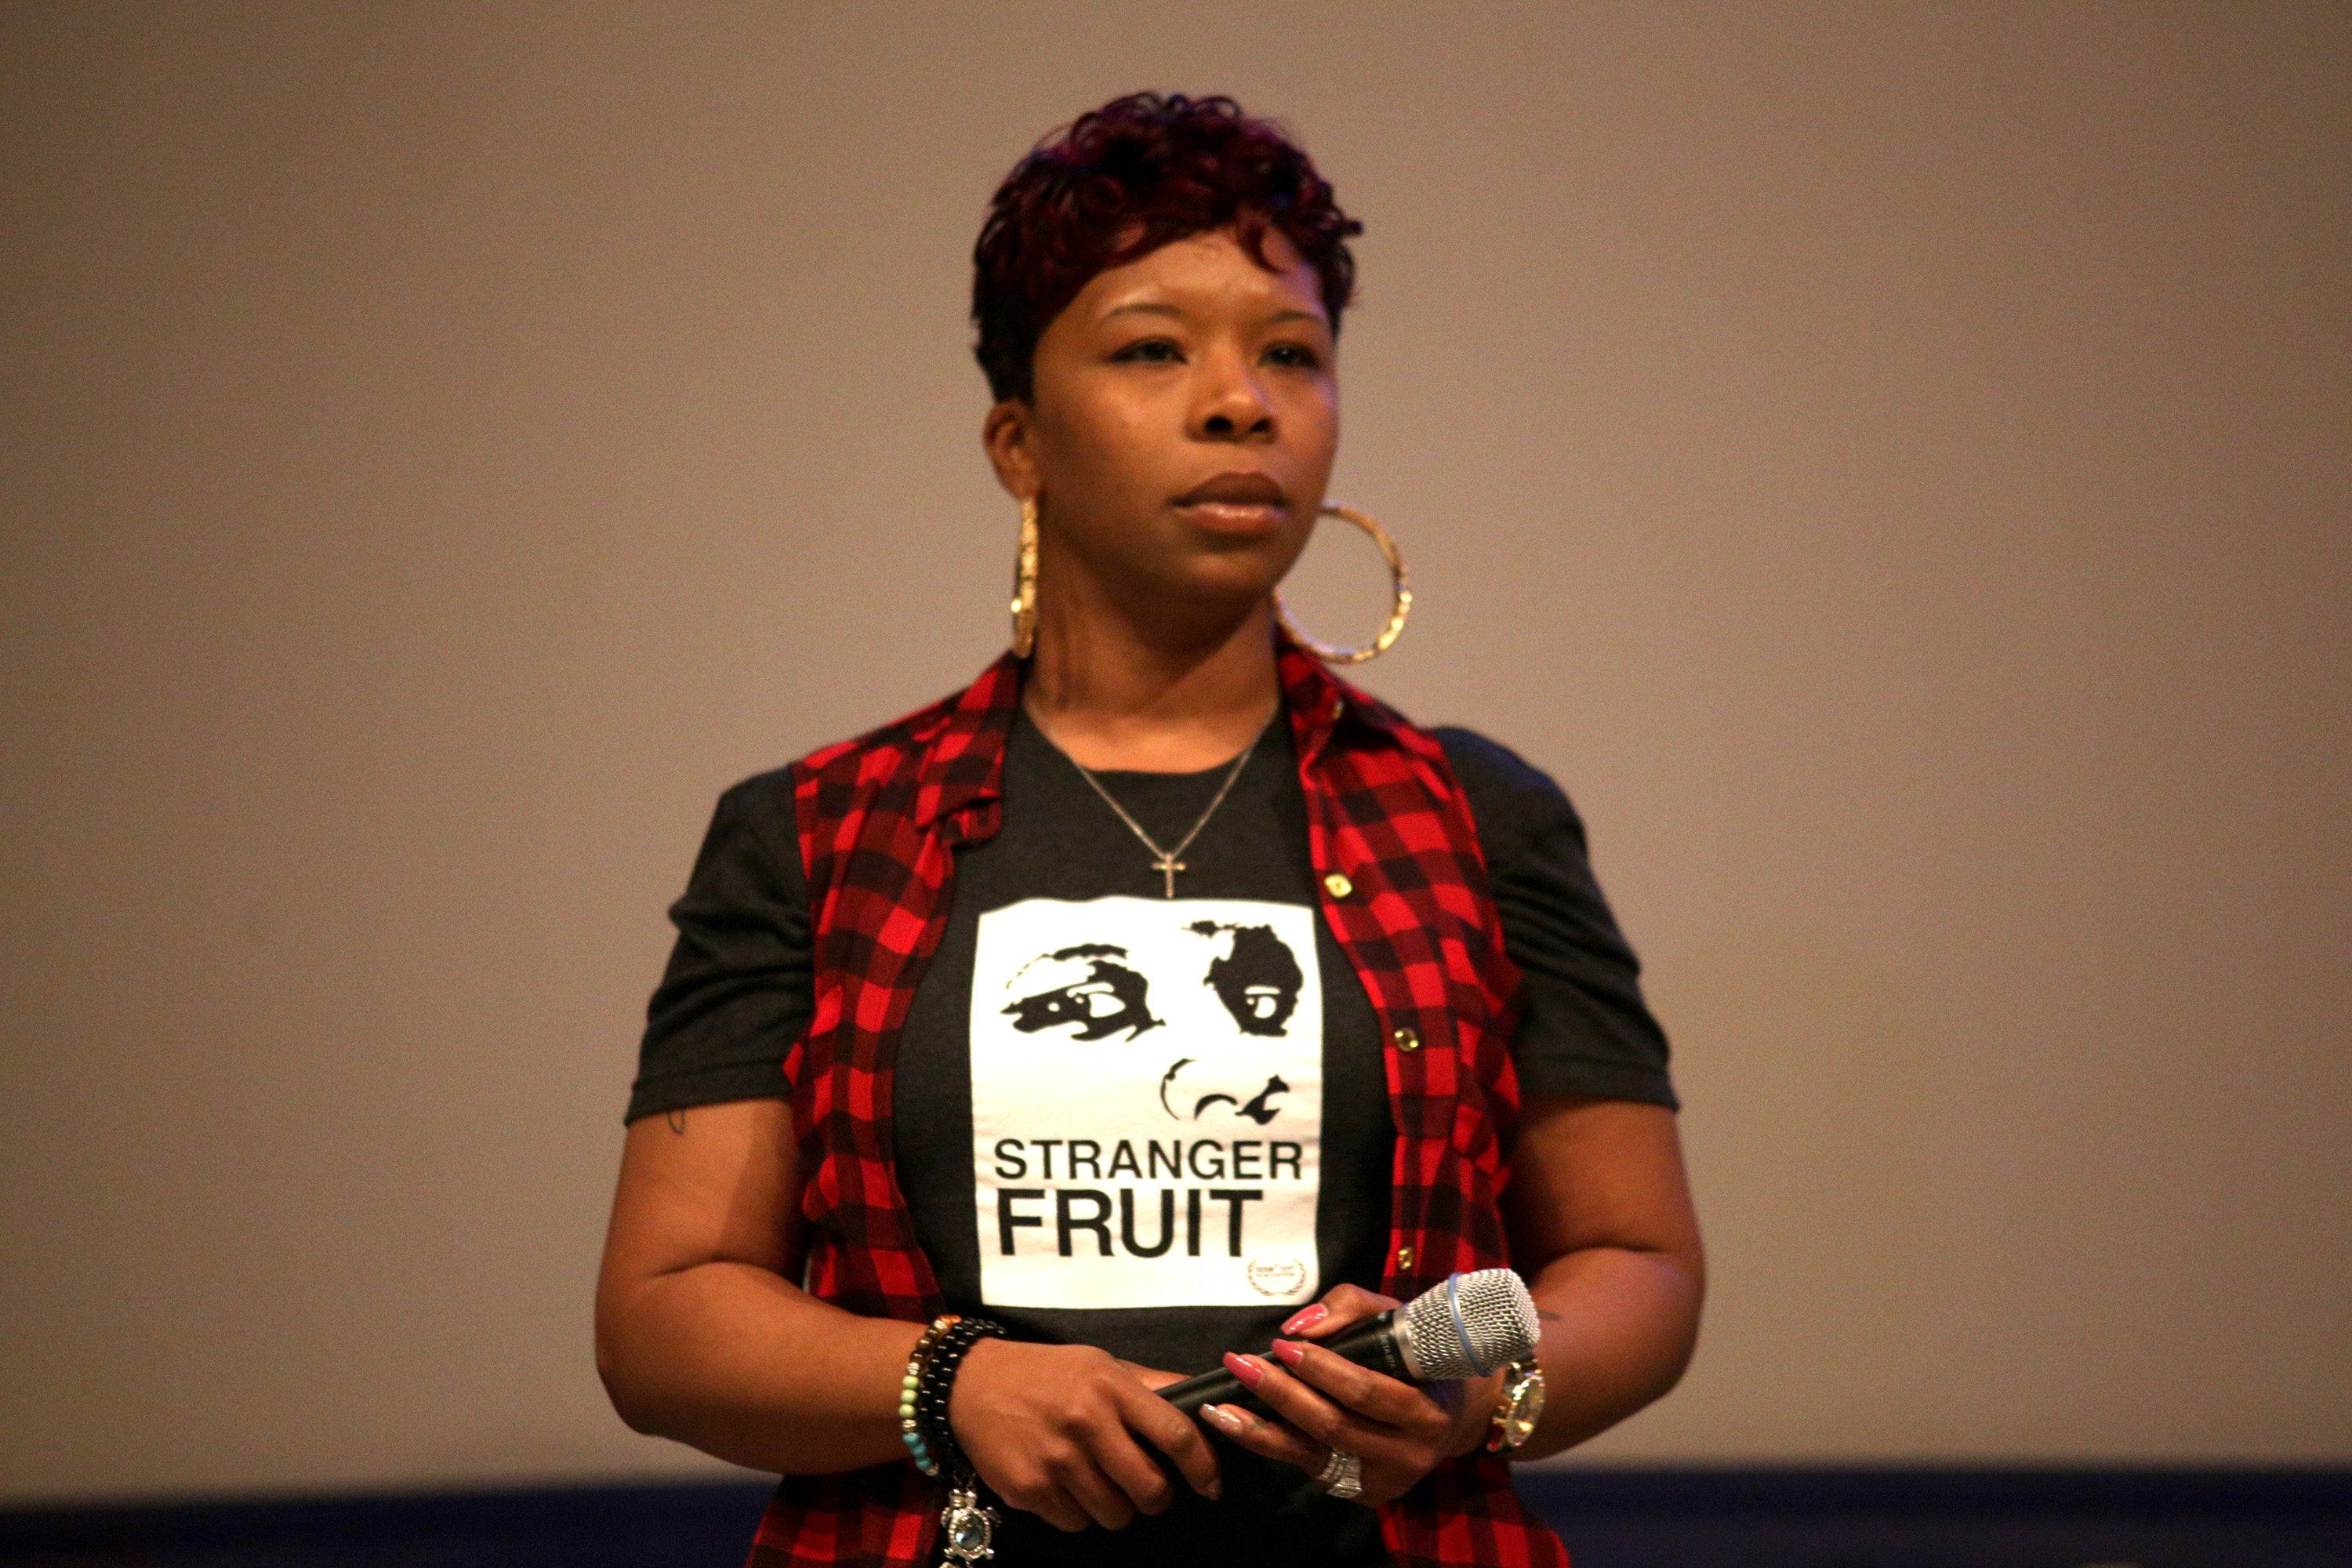 AUSTIN, TX - MARCH 11:  Lezley McSpadden speaks onstage at the premiere of 'Stranger Fruit' during 2017 SXSW Conference and Festivals at Vimeo on March 11, 2017 in Austin, Texas.  (Photo by Sandra Dahdah/Getty Images for SXSW)